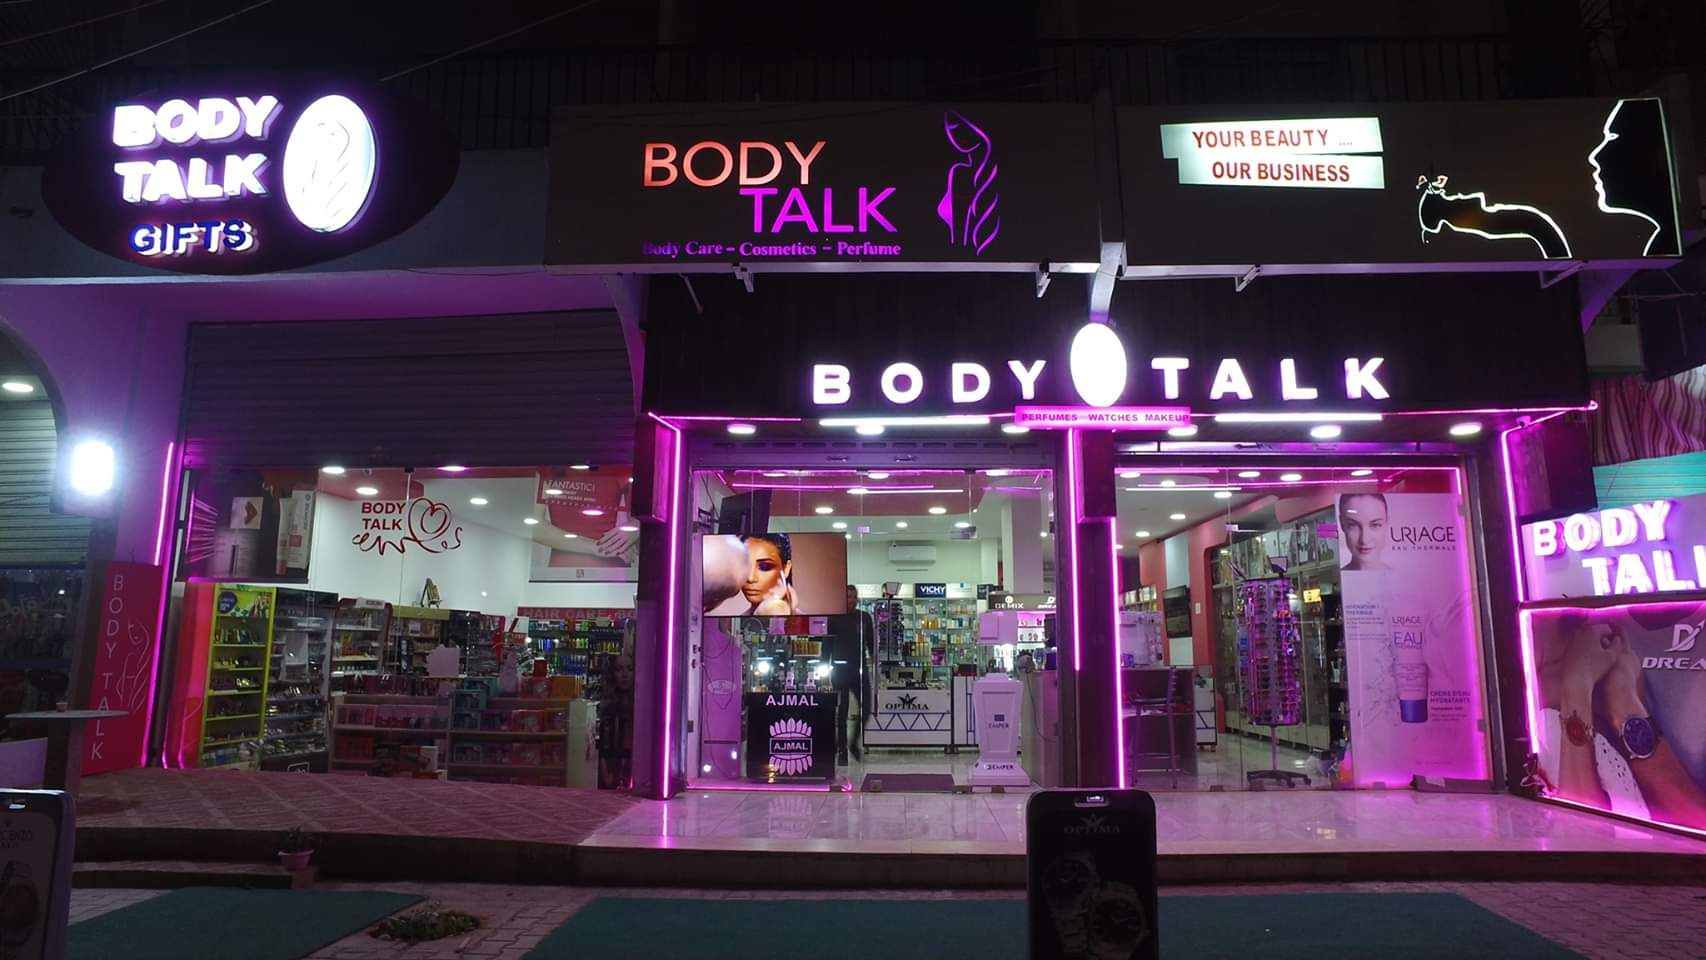 BODY TALK baalbeck